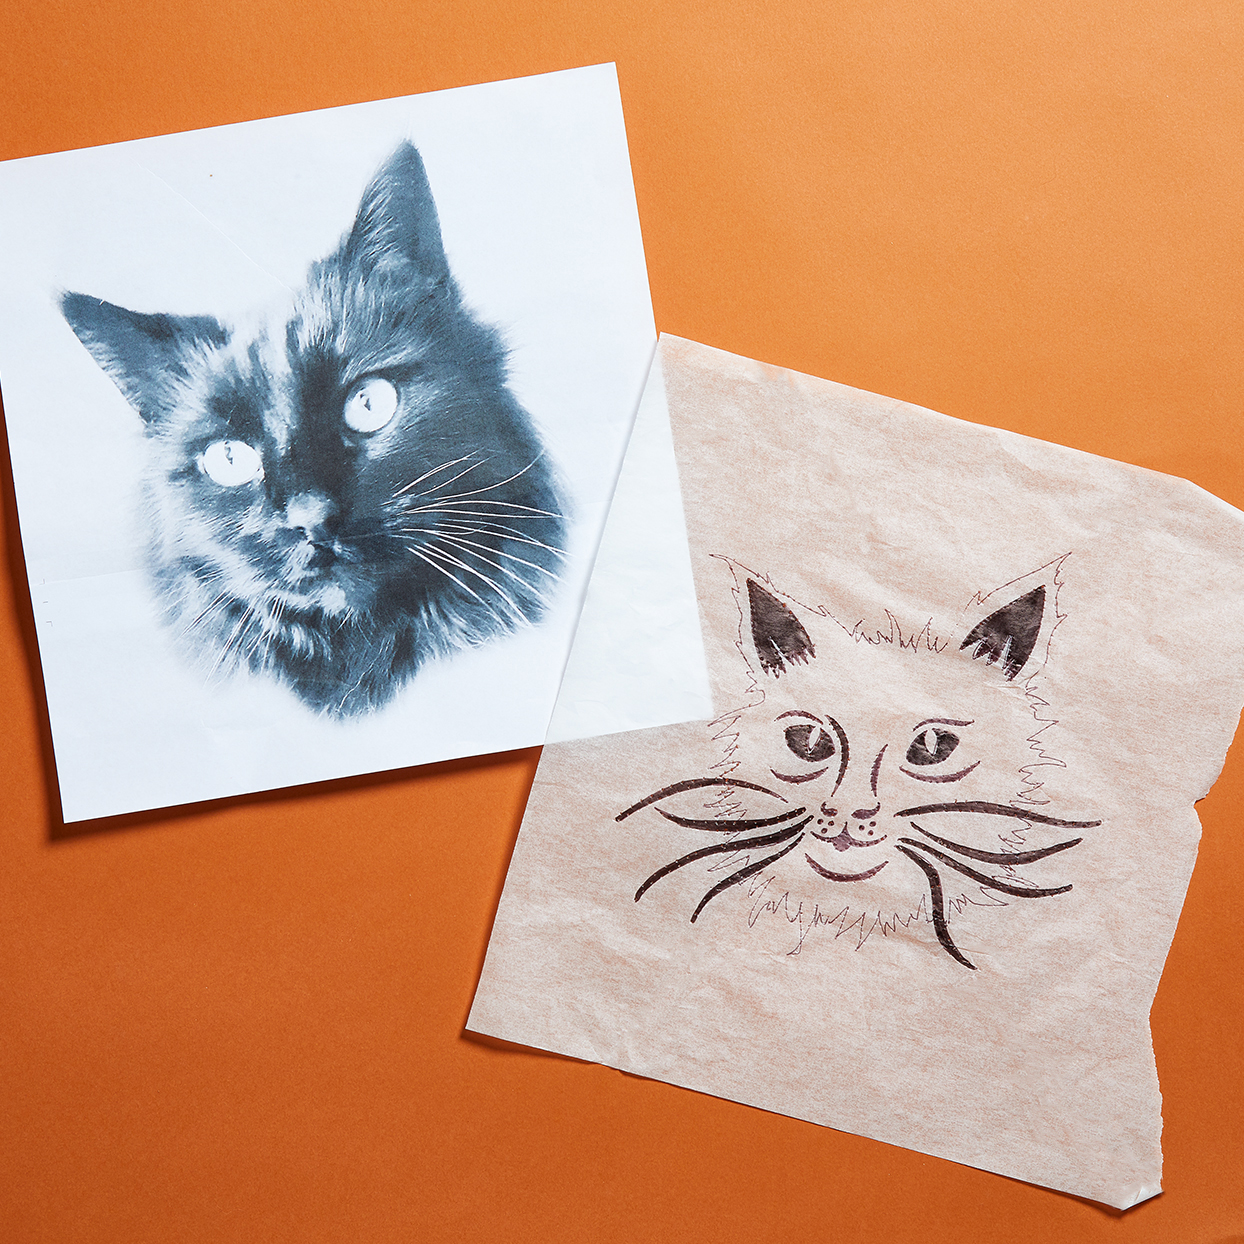 Cat drawing traced on tracing paper for a pumpkin carving on an orange background